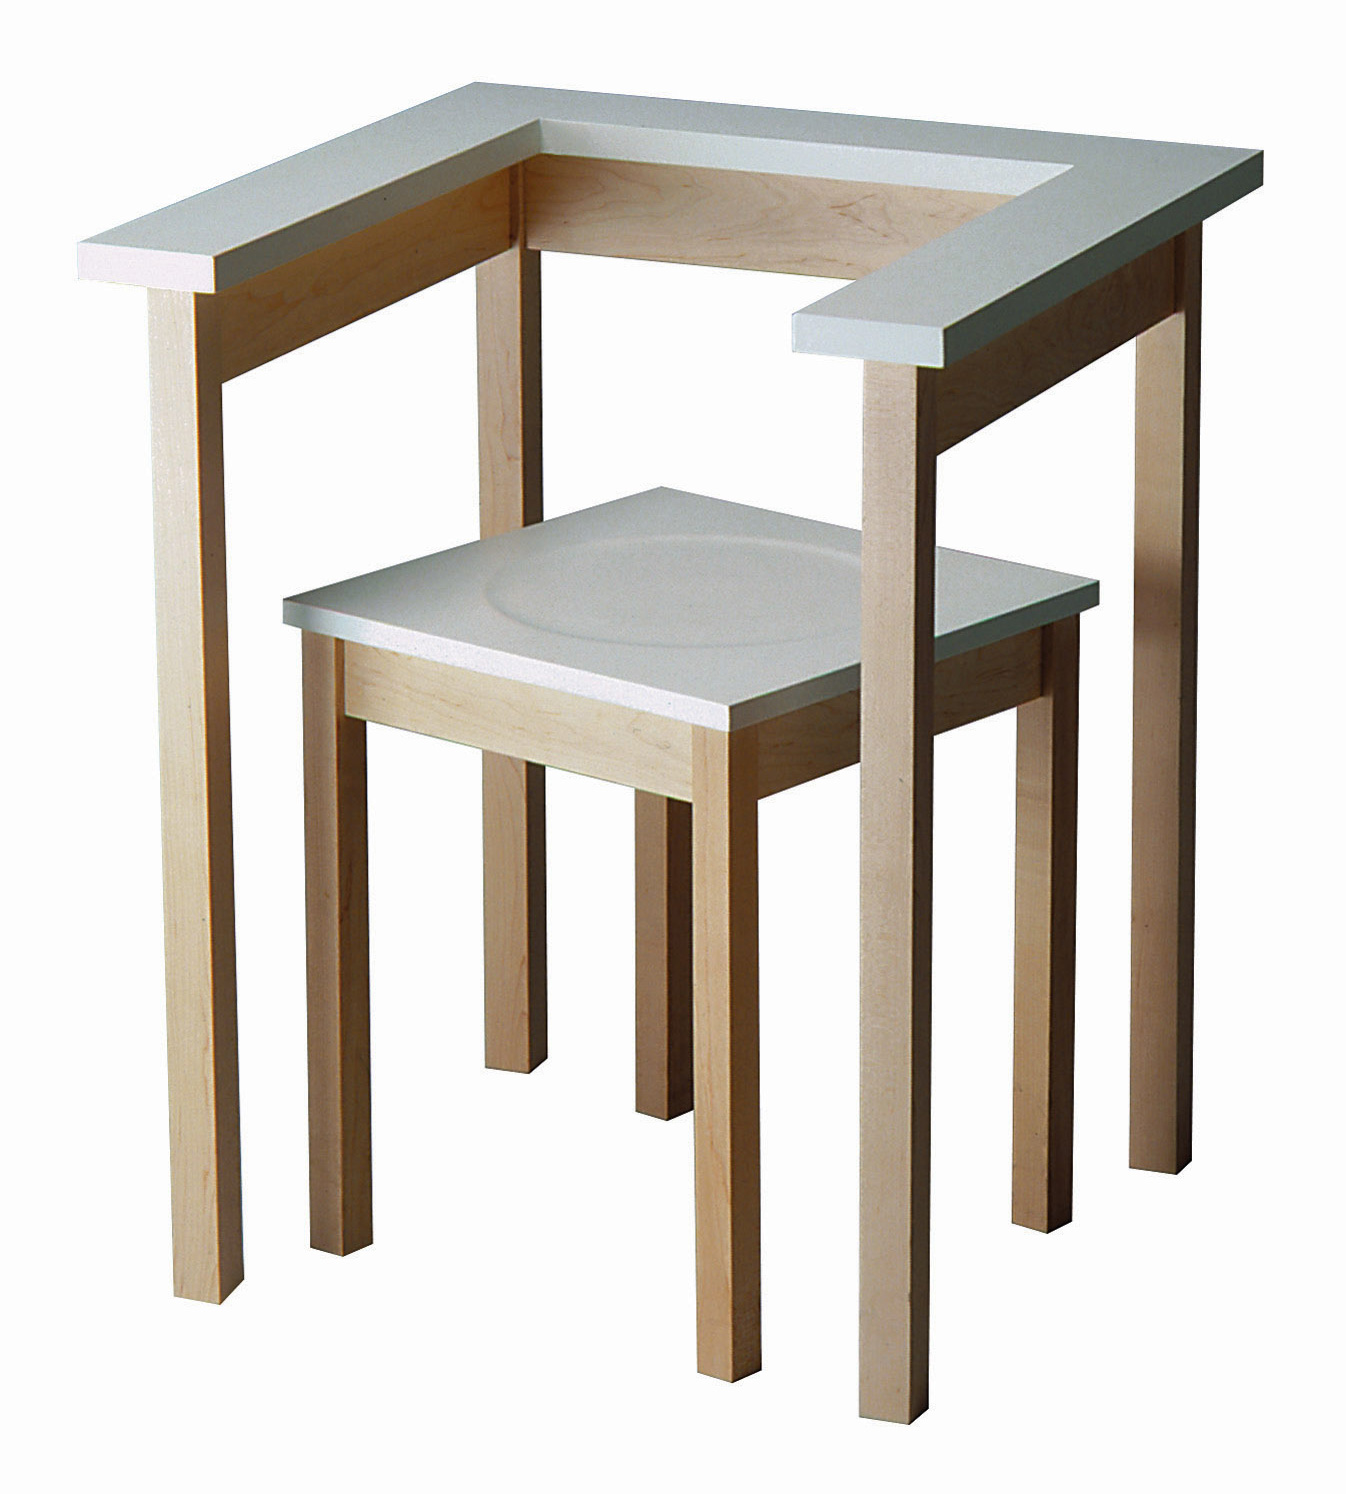 Table Chair - an example of conceptual design (1990)| Cross Border Conversations| Richard Hutten, Rupesh Baid| STIR